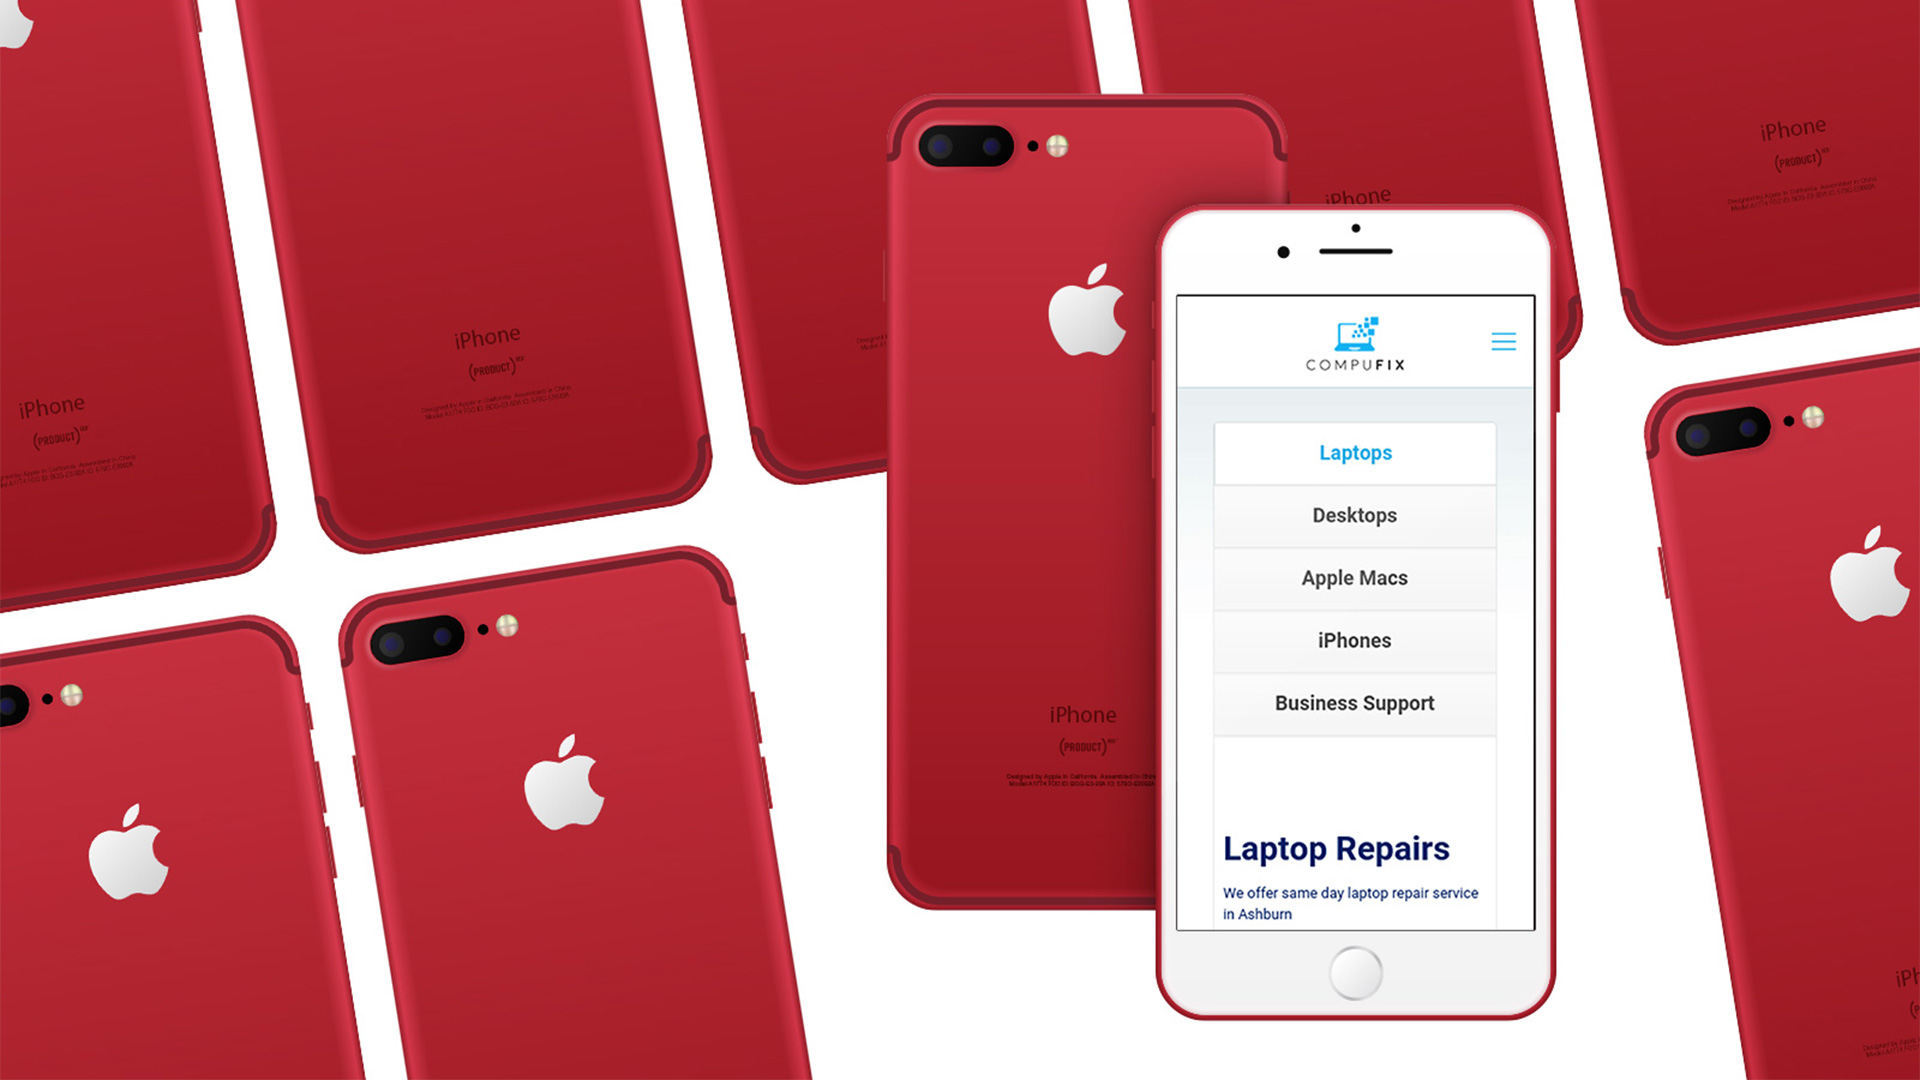 Compufix can help you with all your Apple products. If you need your Mac setting up or have a broken your iPhone screen or Apple Mac has stopped working, we're here to help. We are iPhone experts